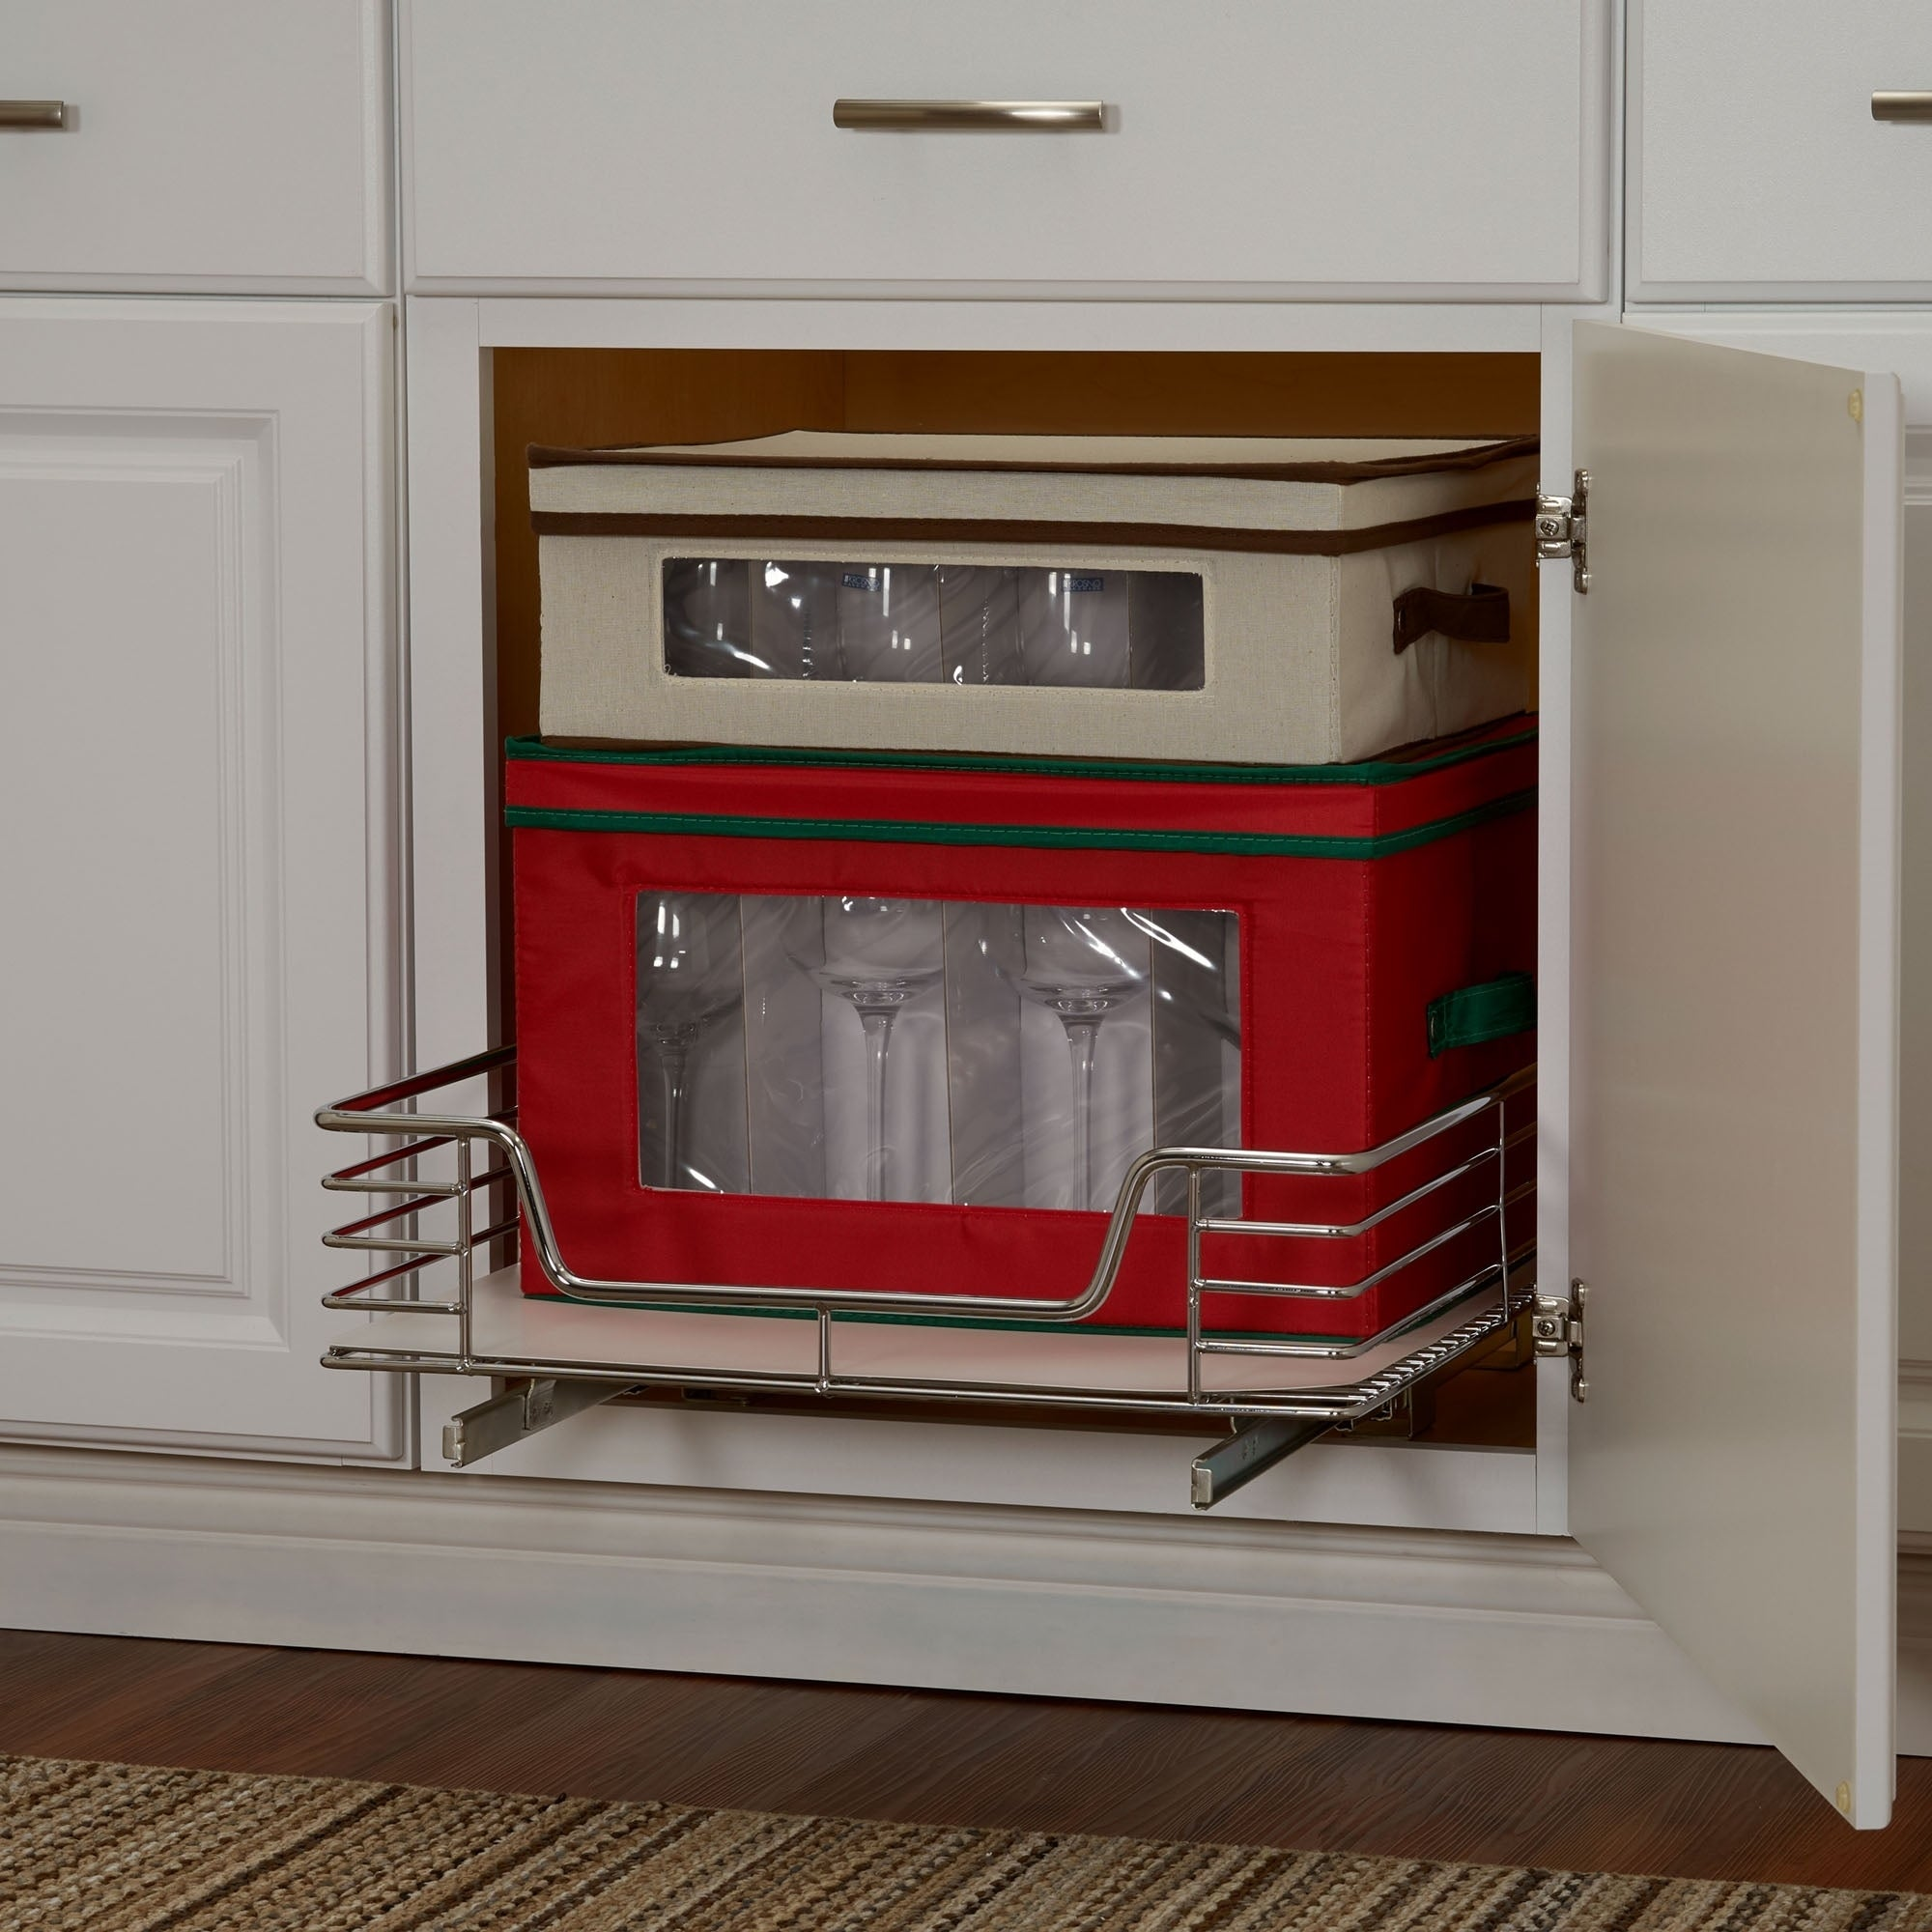 Shop Deep 20 Inch Glidez Sliding Under Cabinet Organizer, Chrome With Liner    Free Shipping Today   Overstock.com   17520658